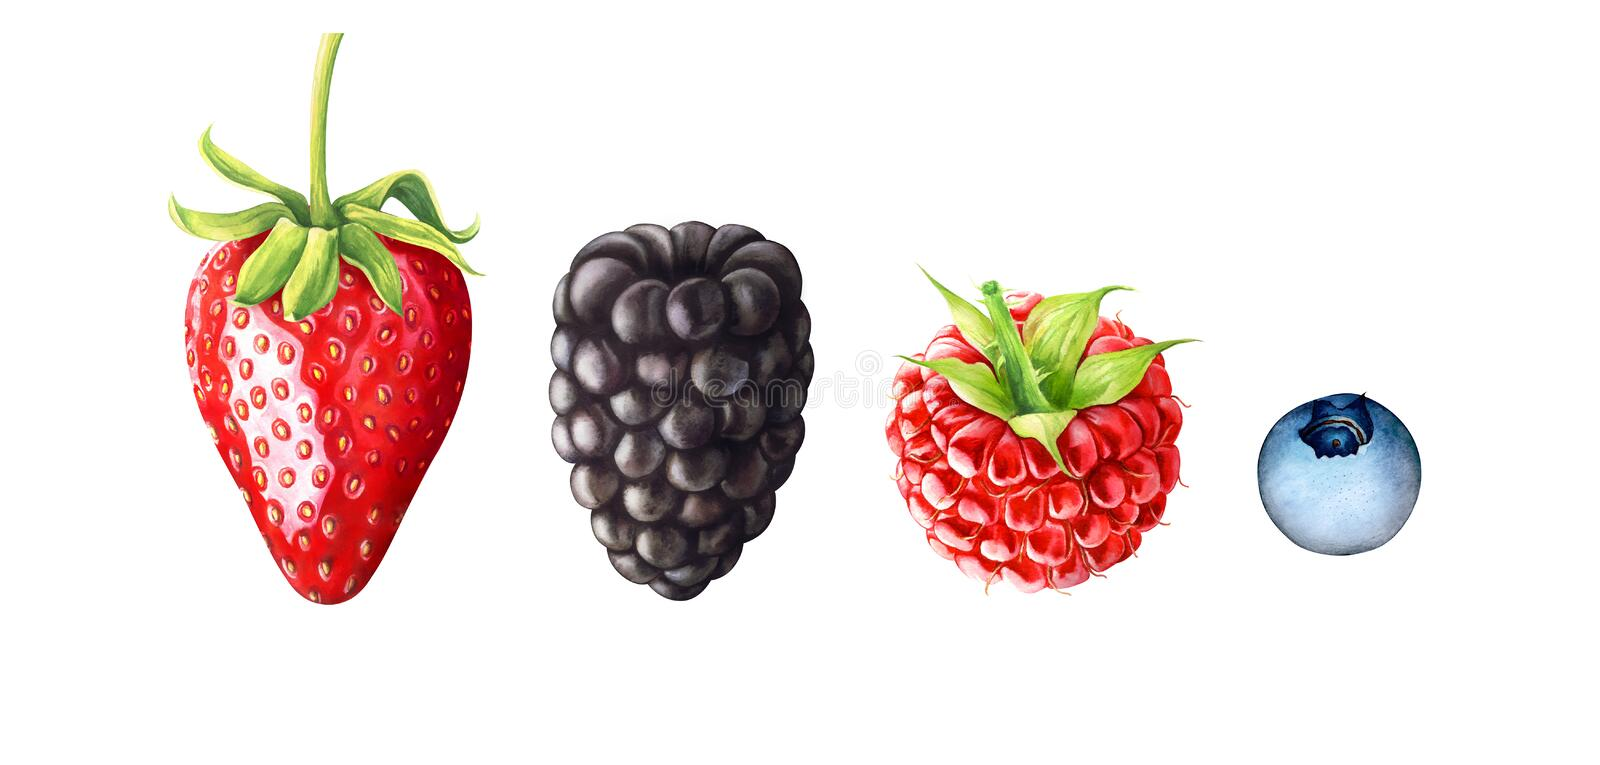 Watercolor illustration of berries. Strawberry, blackberry, raspberry, blueberry isolated on white background. Hand drawn watercolor illustration of berries stock illustration